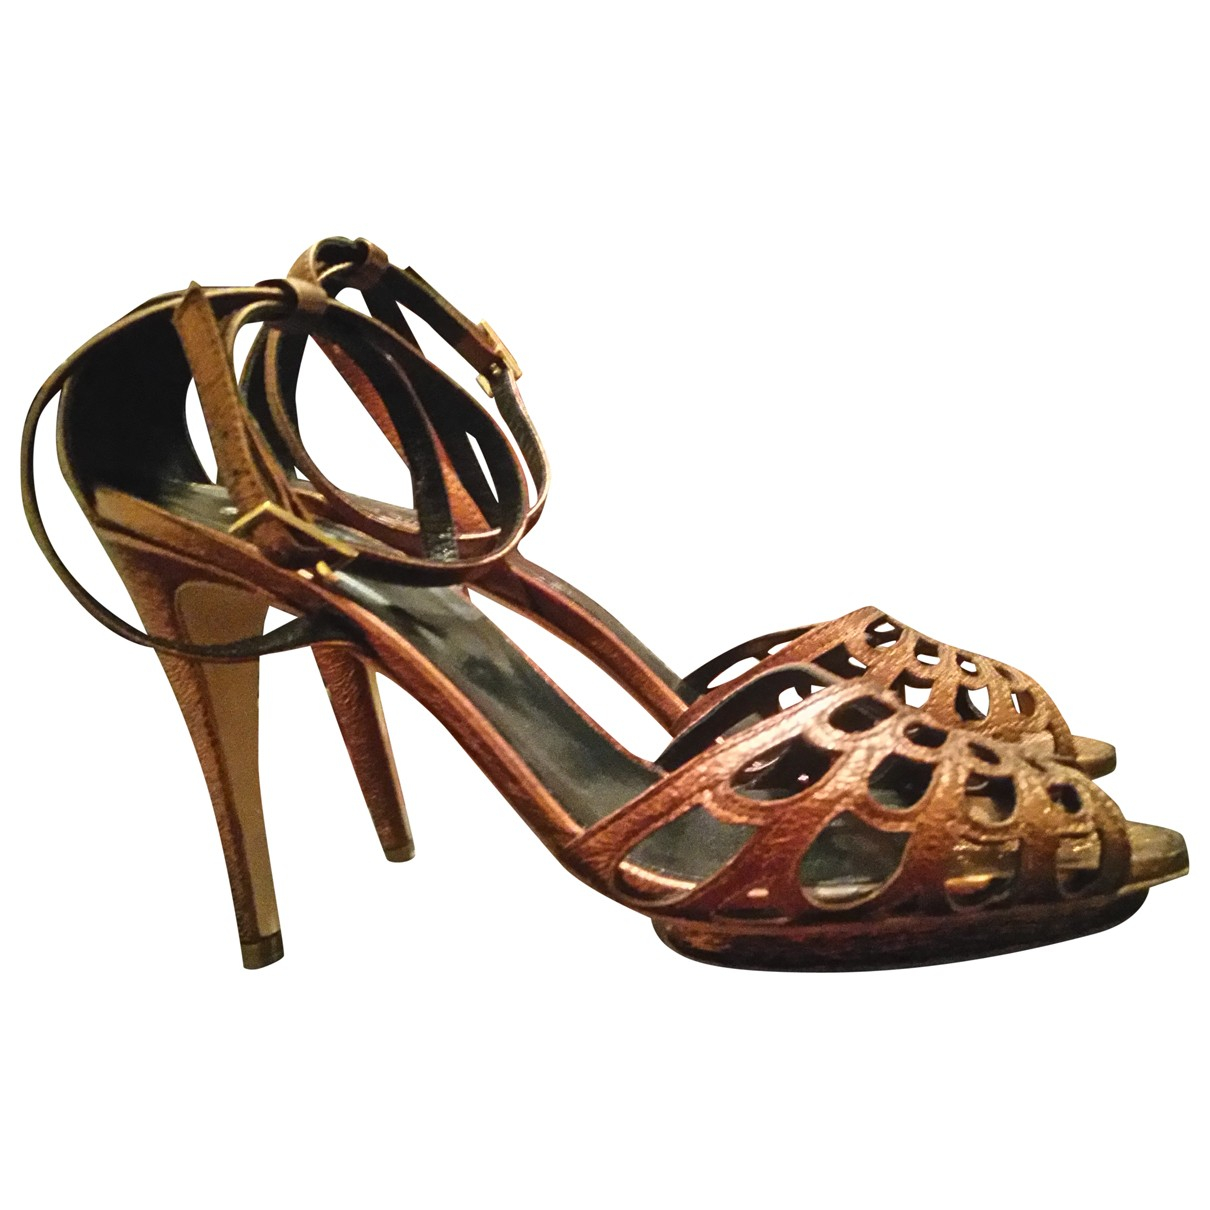 Hobbs N Gold Leather Sandals for Women 39 EU